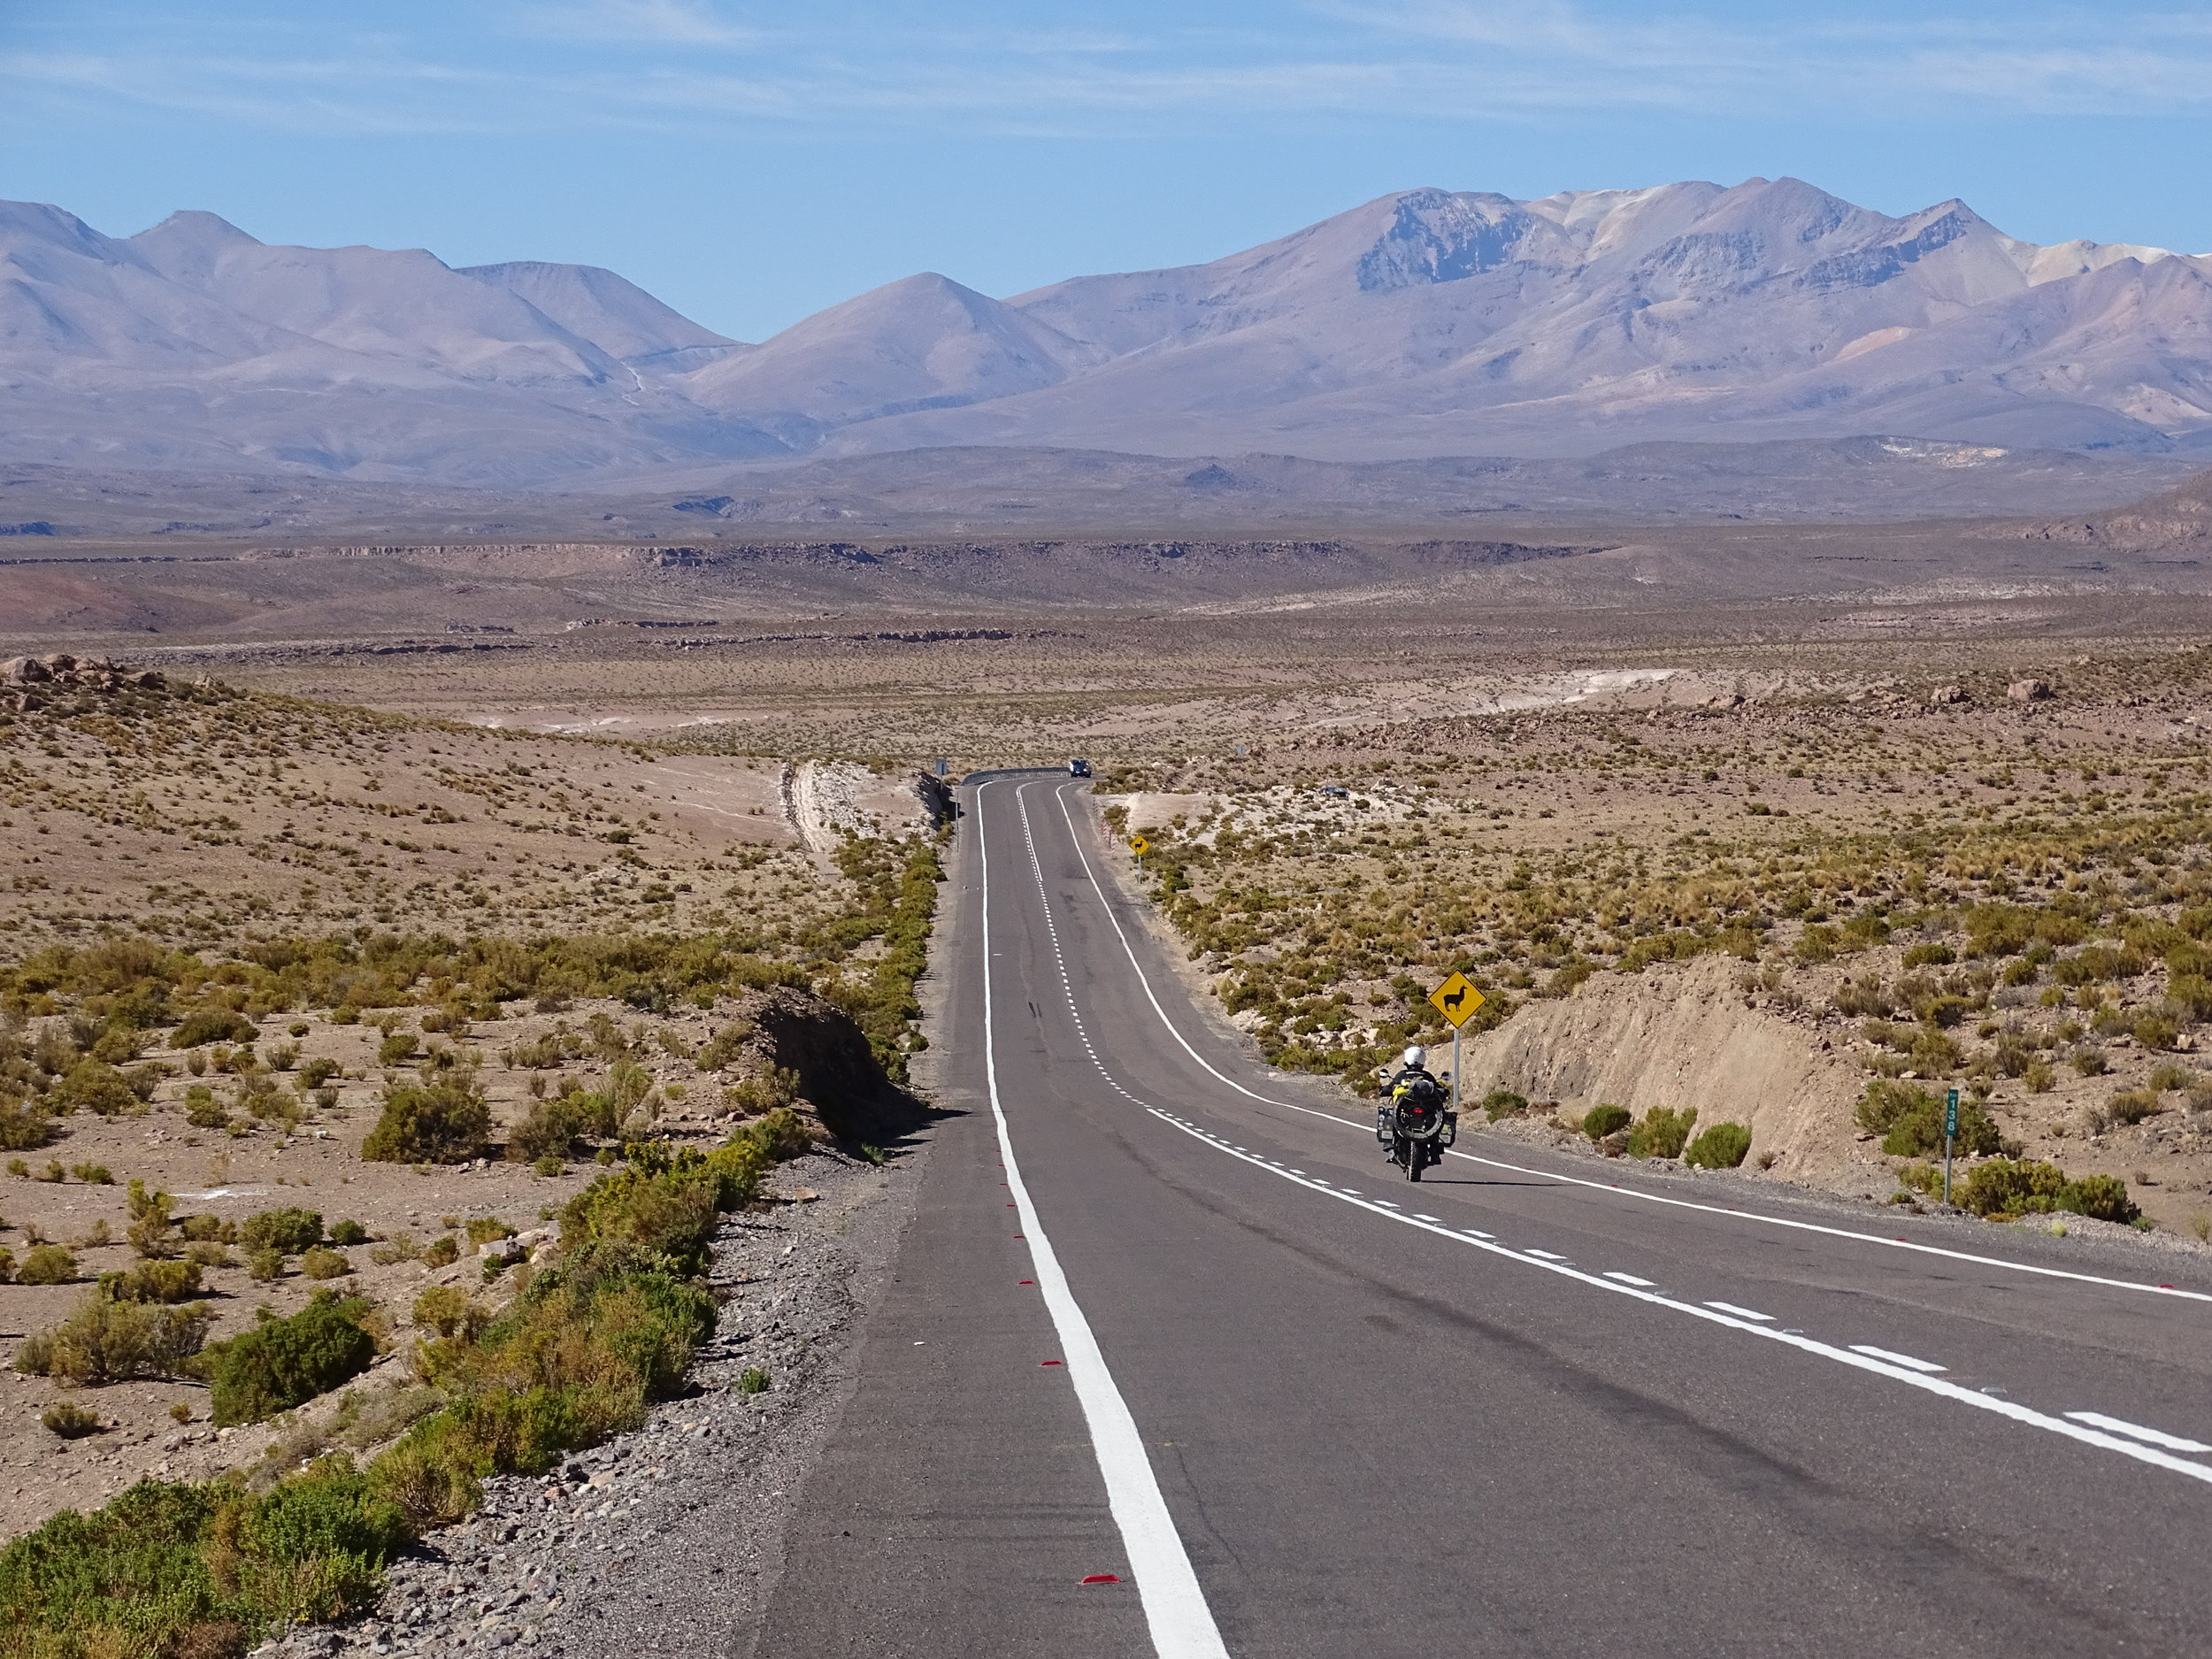 The paved roads in Chile are first class.